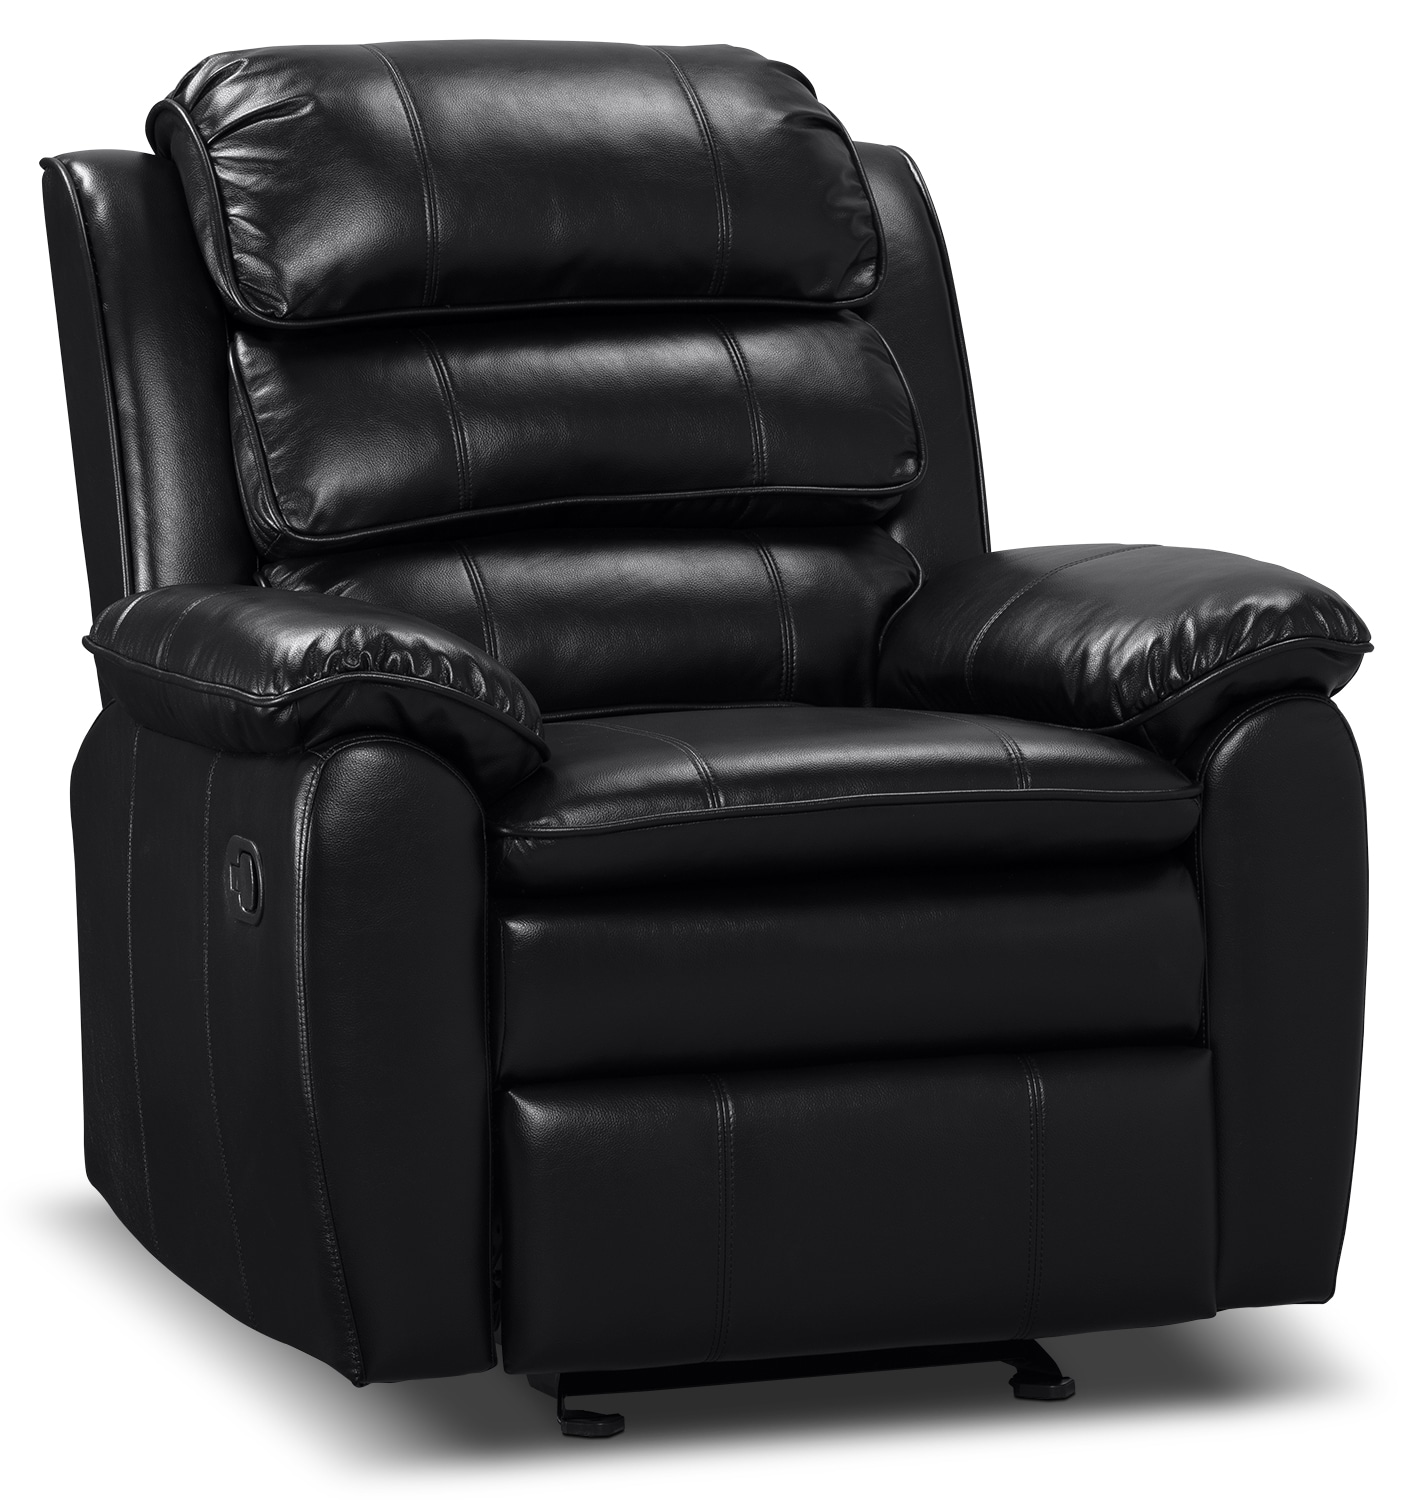 Living Room Furniture - Adam Leather-Look Fabric Reclining Glider Chair – Black